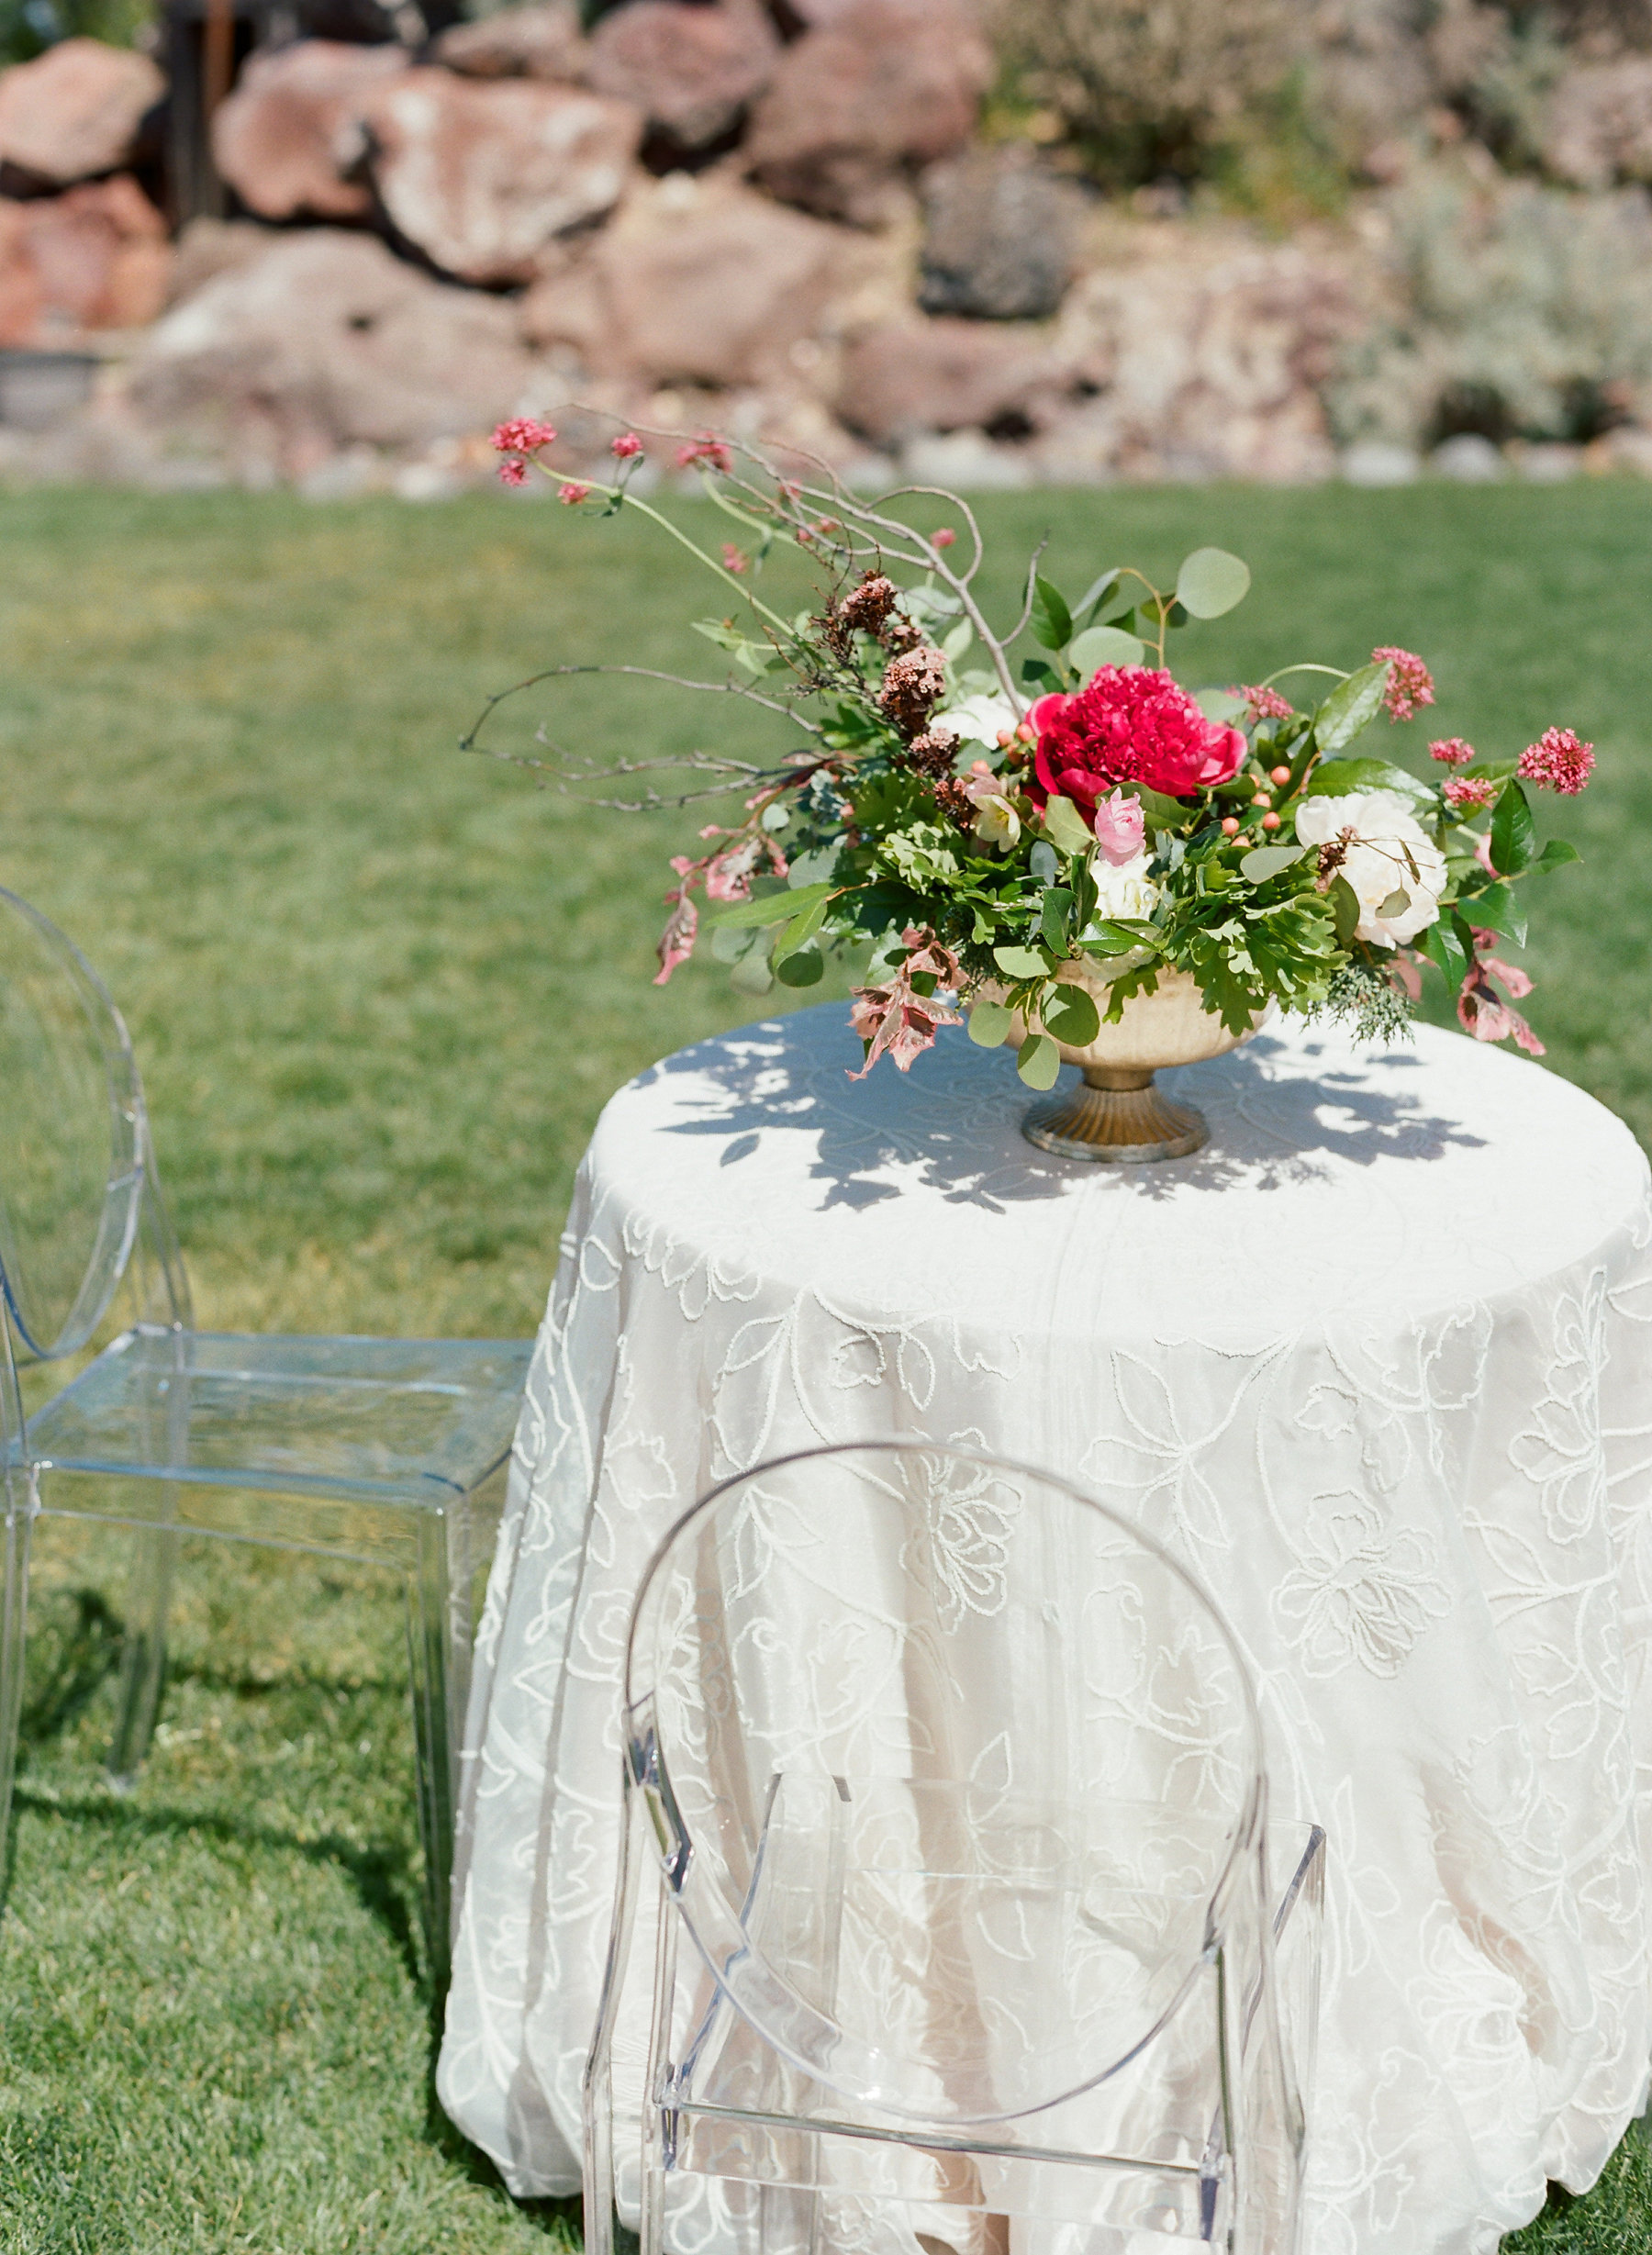 Carrie Patterson Photography, Ira and Lucy Wedding Planner, Boise Wedding, Idaho Wedding